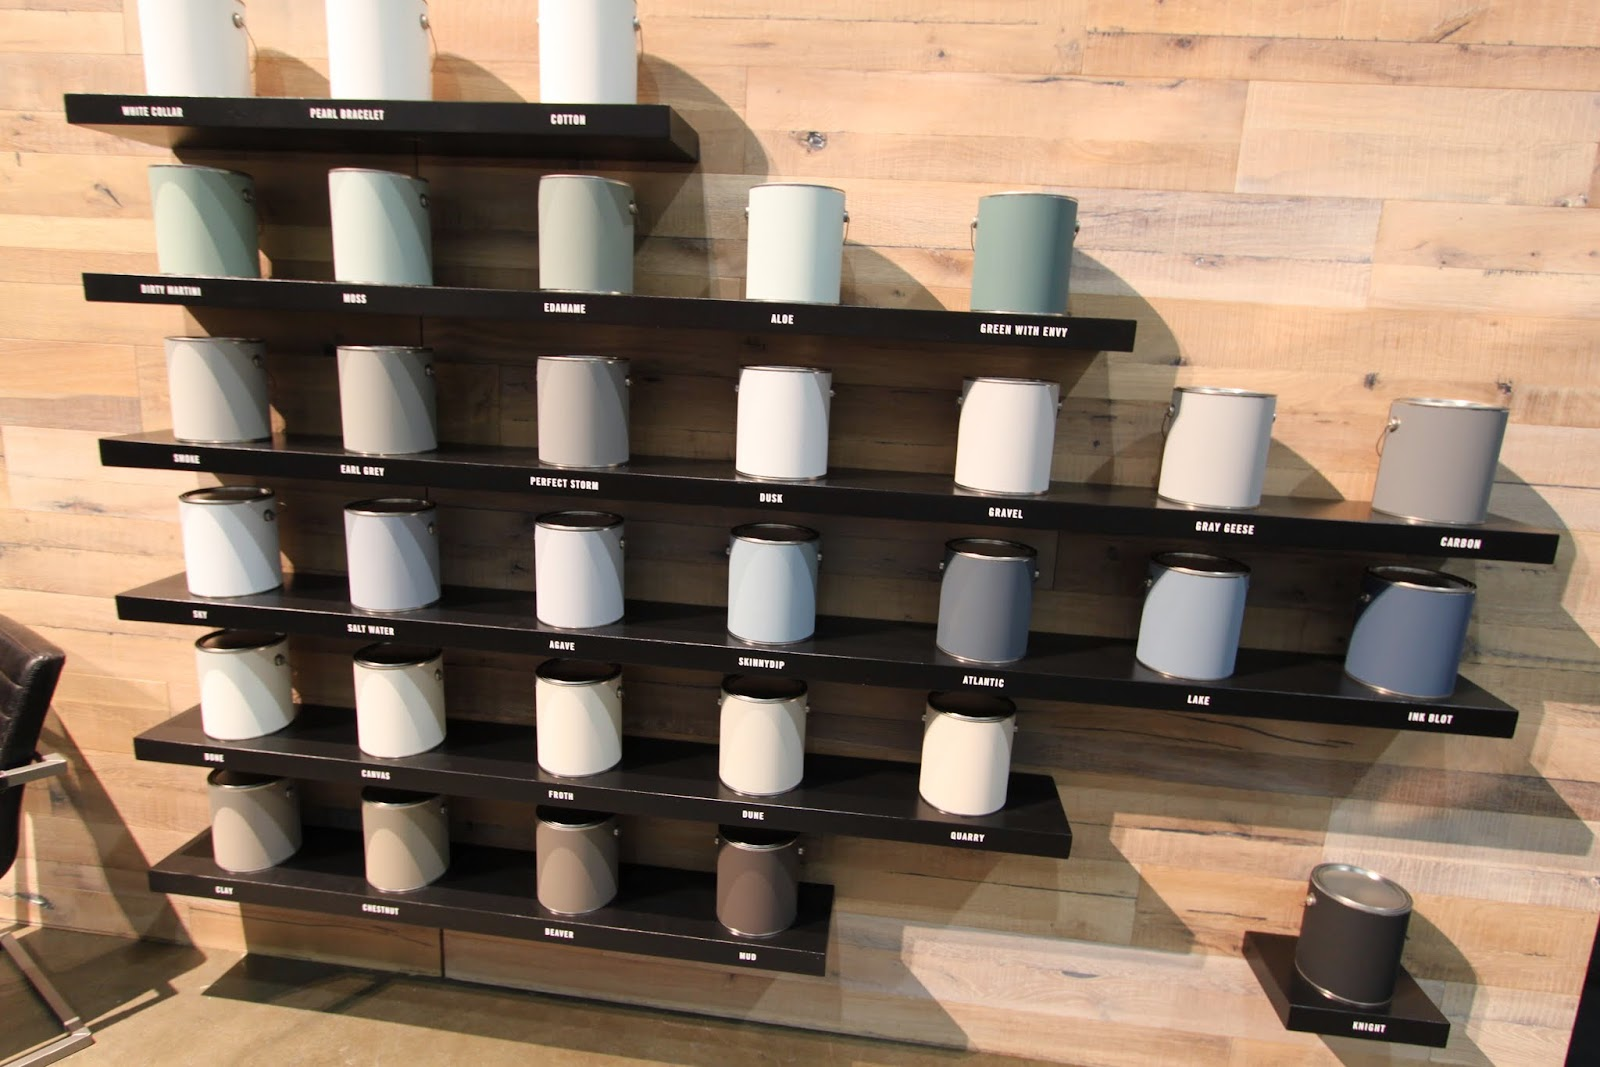 dwellondesign 2013: miscellaneous and random goodies | mid-century